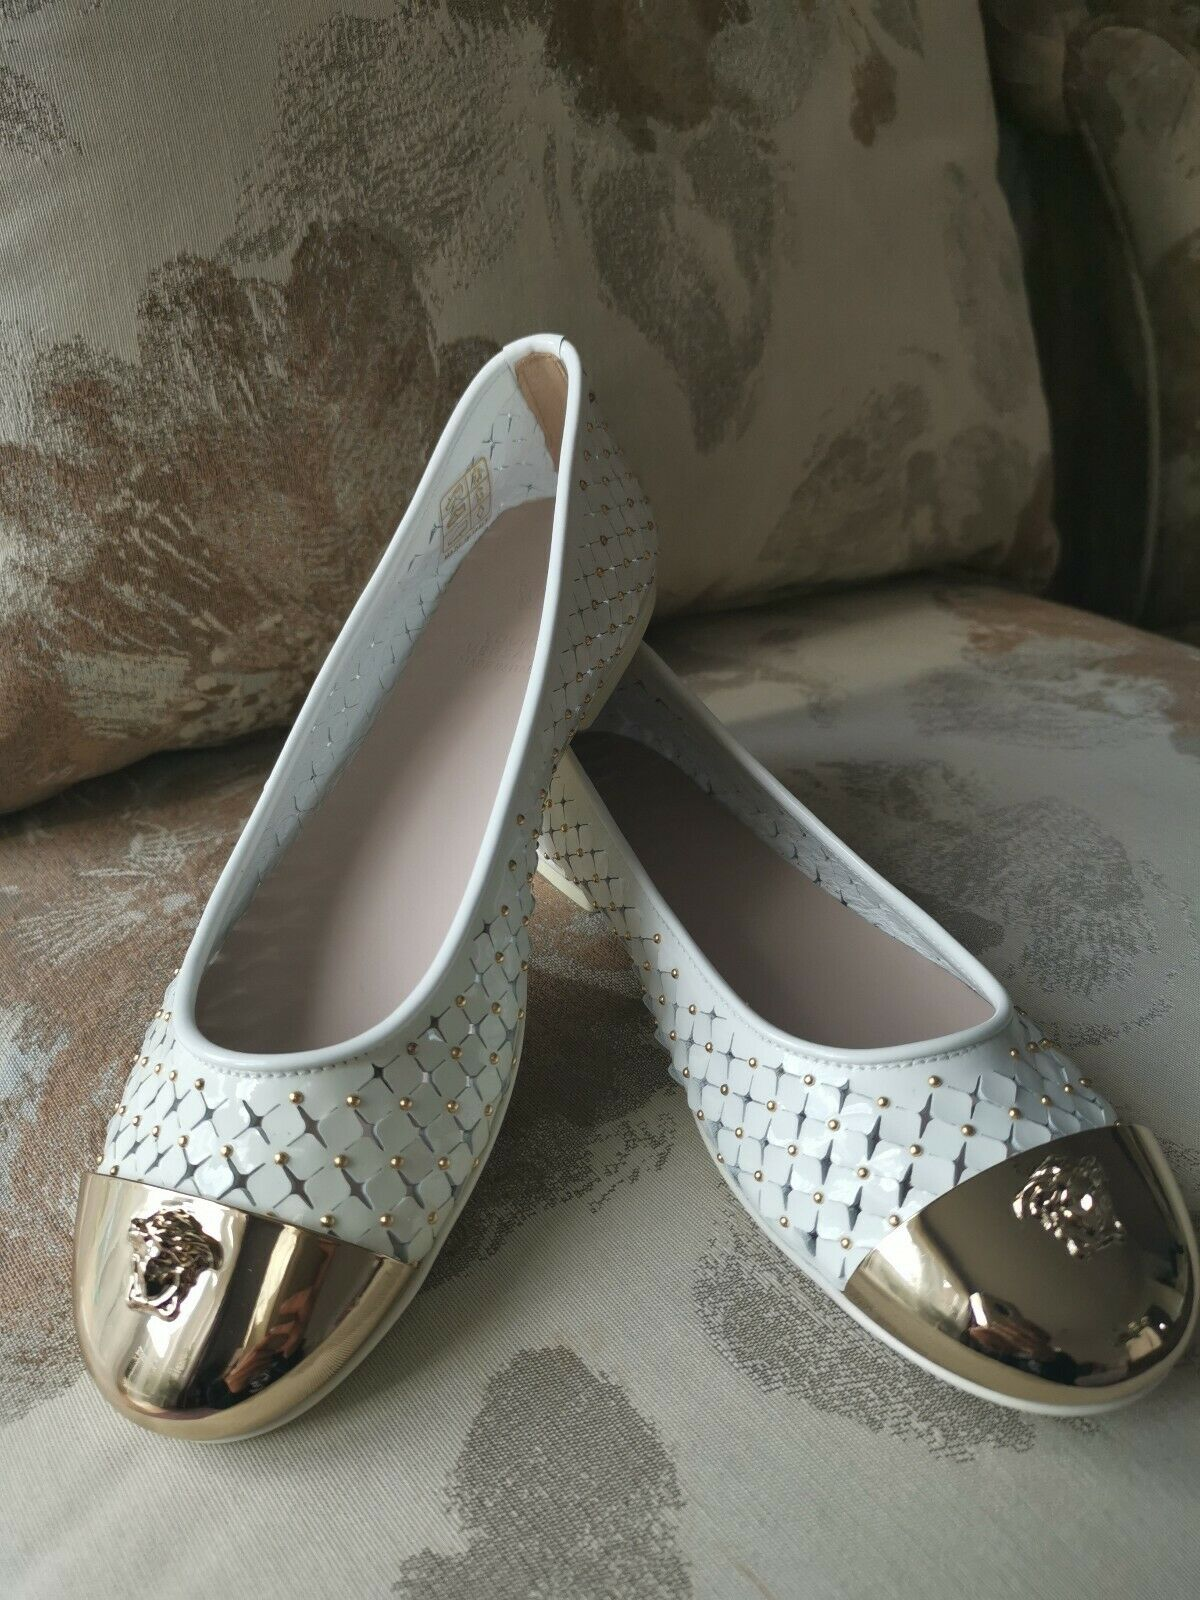 49e9bcdc2f520 Versace gold, White Flats, Leather, Leather, Leather, Summer ...